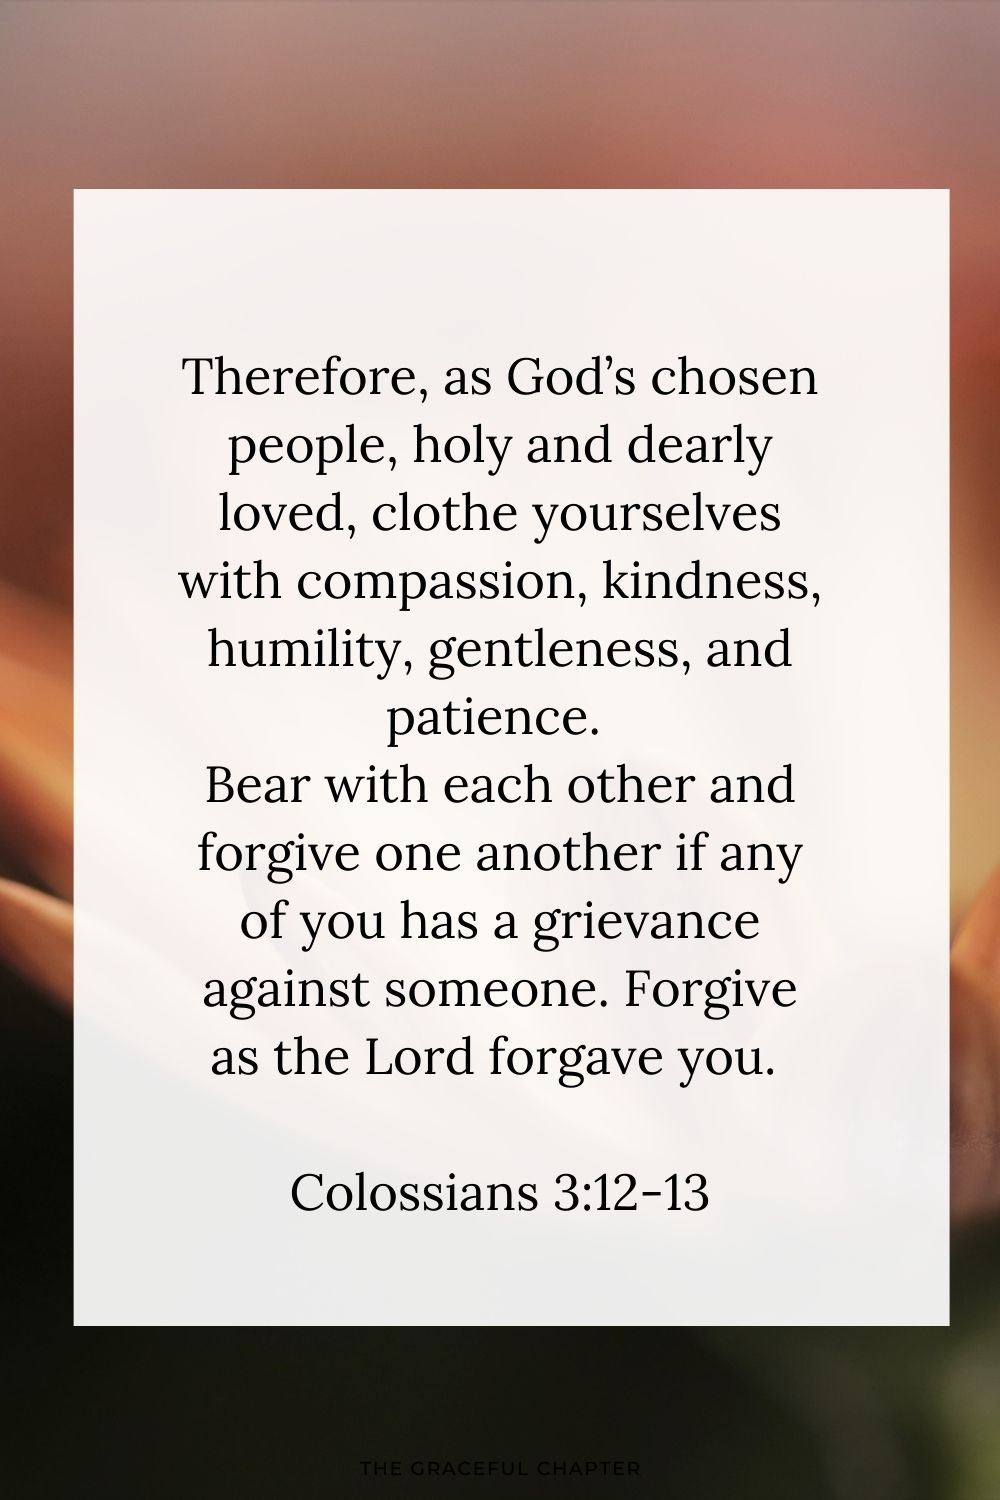 Therefore, as God's chosen people, holy and dearly loved, clothe yourselves with compassion, kindness, humility, gentleness, and patience. Bear with each other and forgive one another if any of you has a grievance against someone. Forgive as the Lord forgave you. Colossians 3:12-13